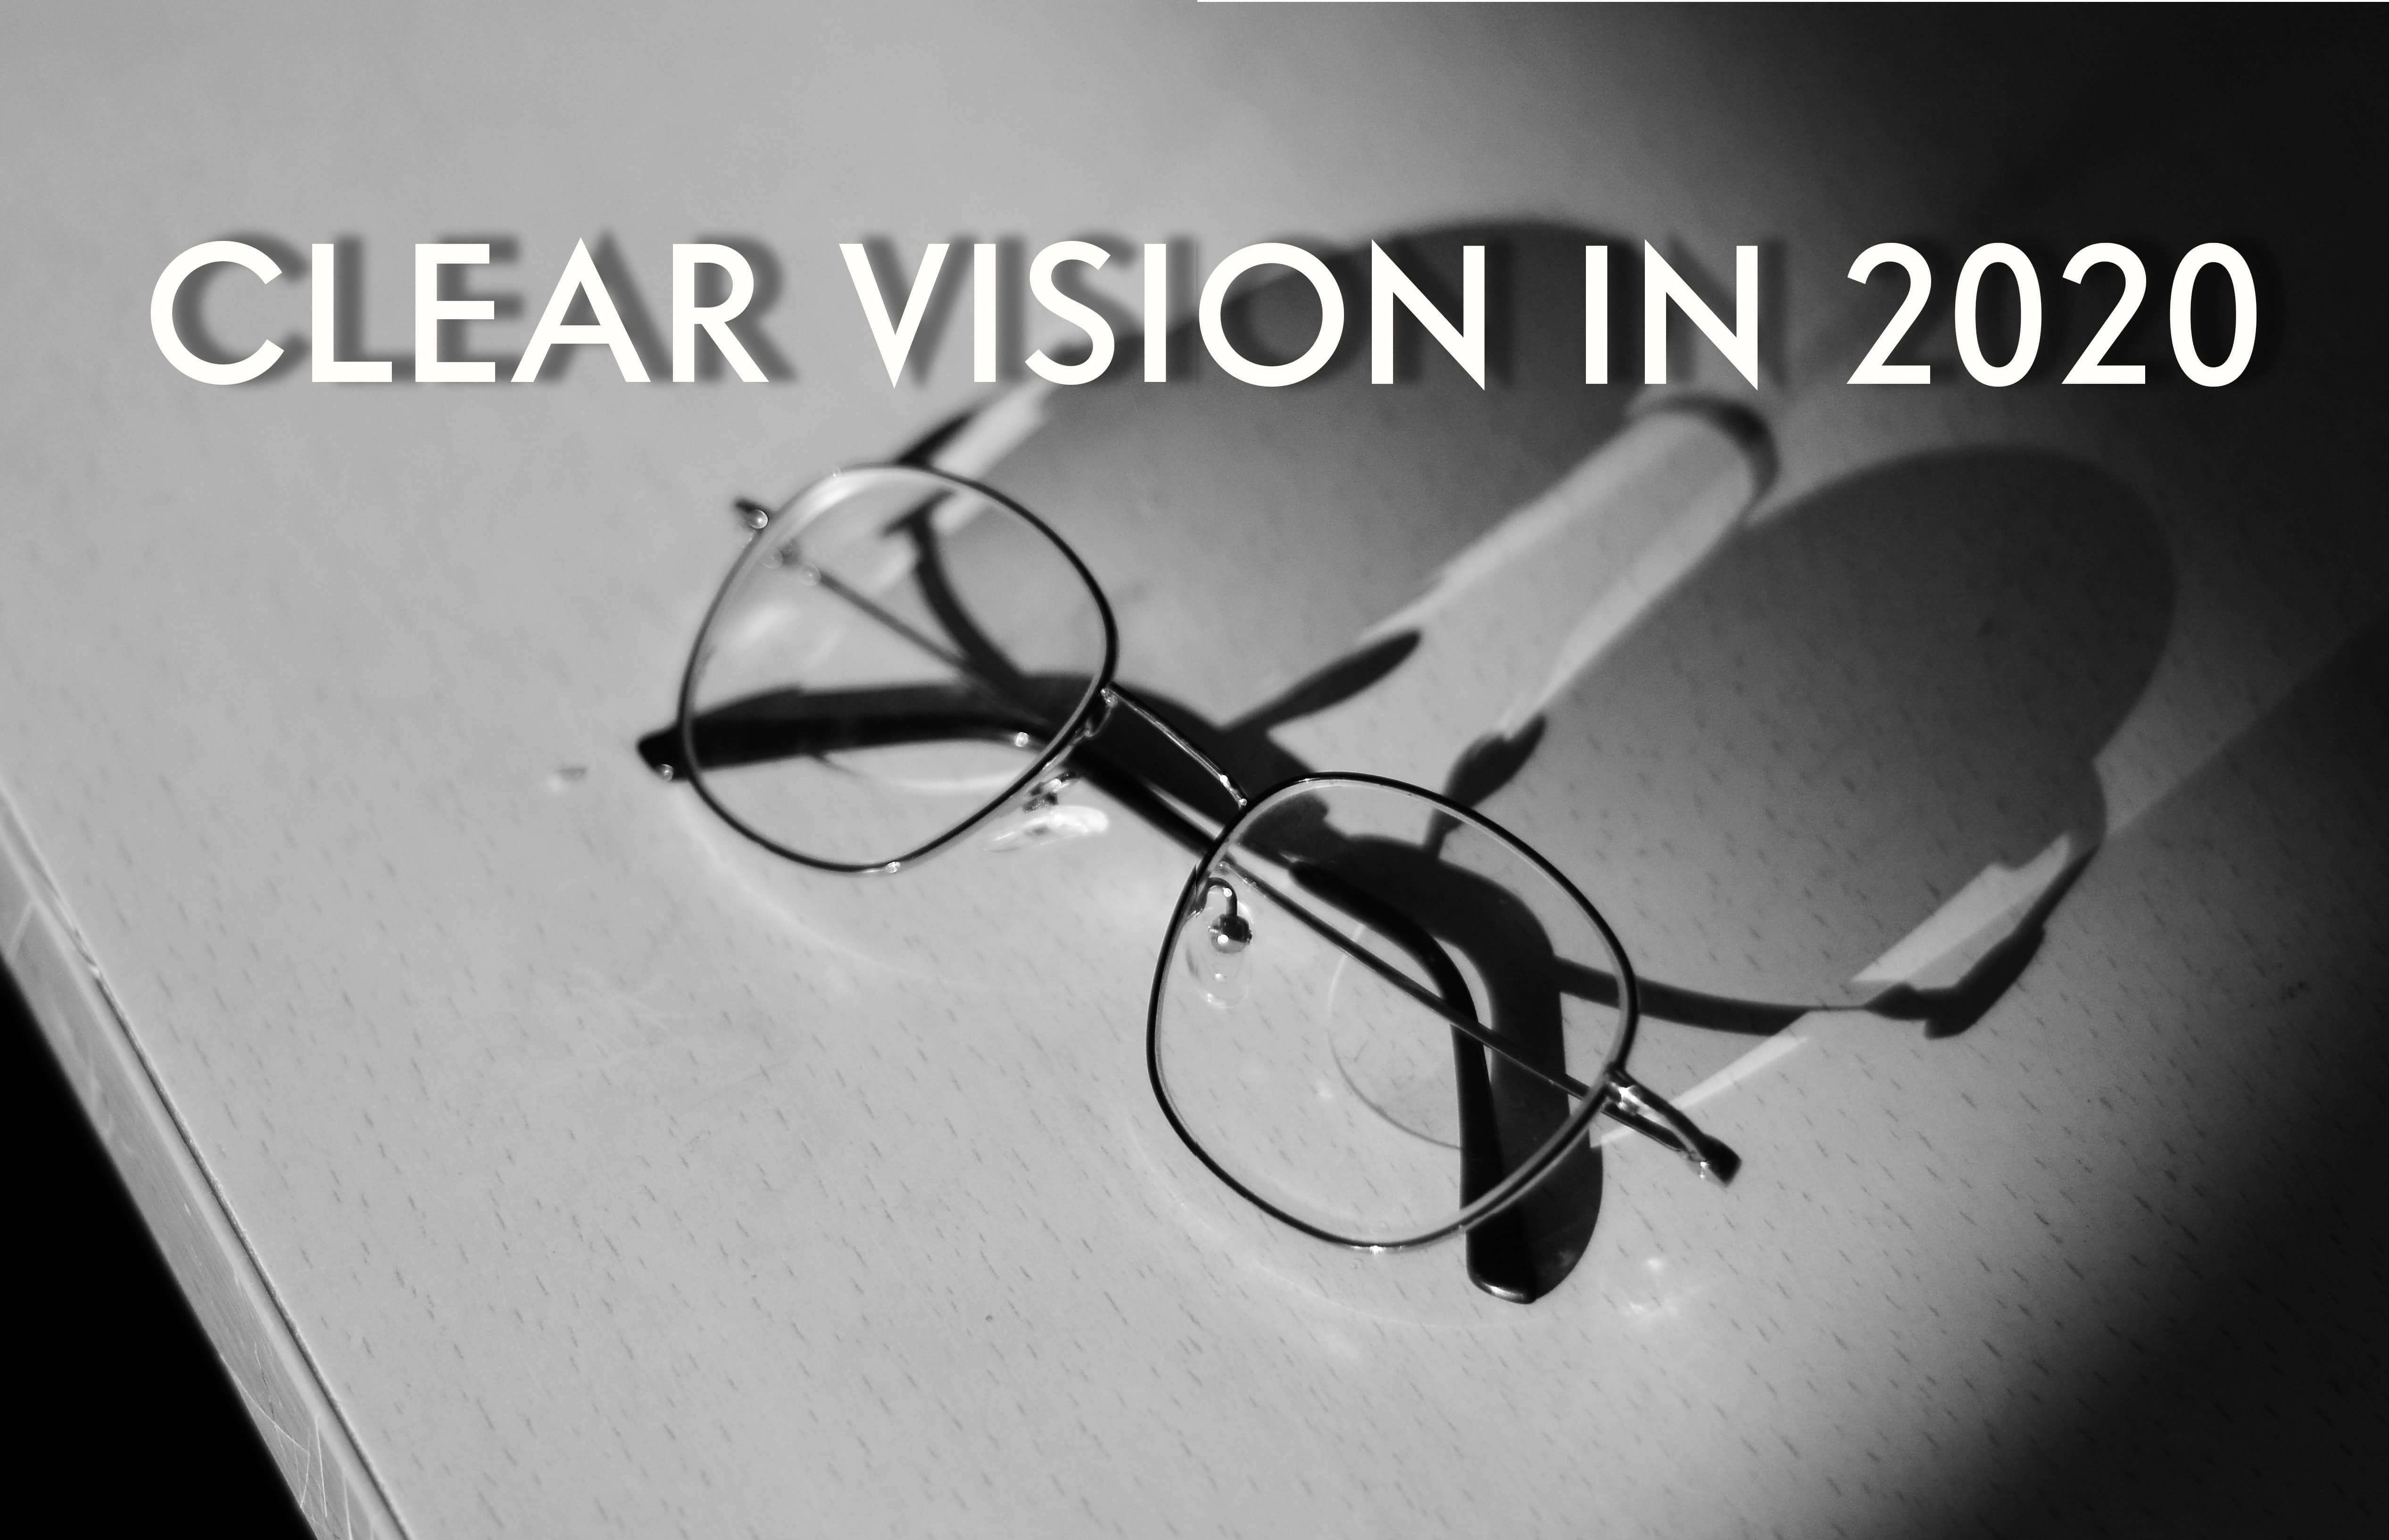 CLEAR VISION IN 2020